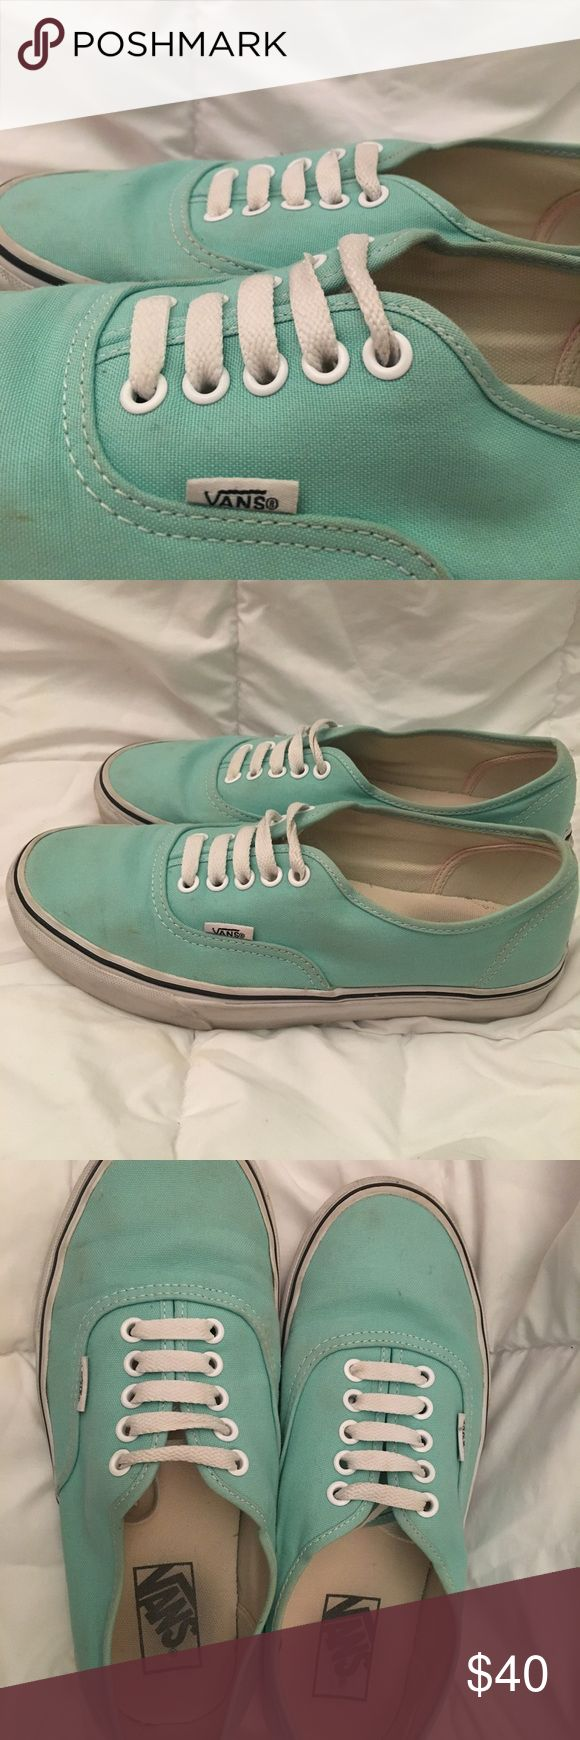 Mint green Vans Worn a few times, some minor smudges on fabric, unisex. No trades please (: all purchases come with a free mini gift!! Vans Shoes Sneakers